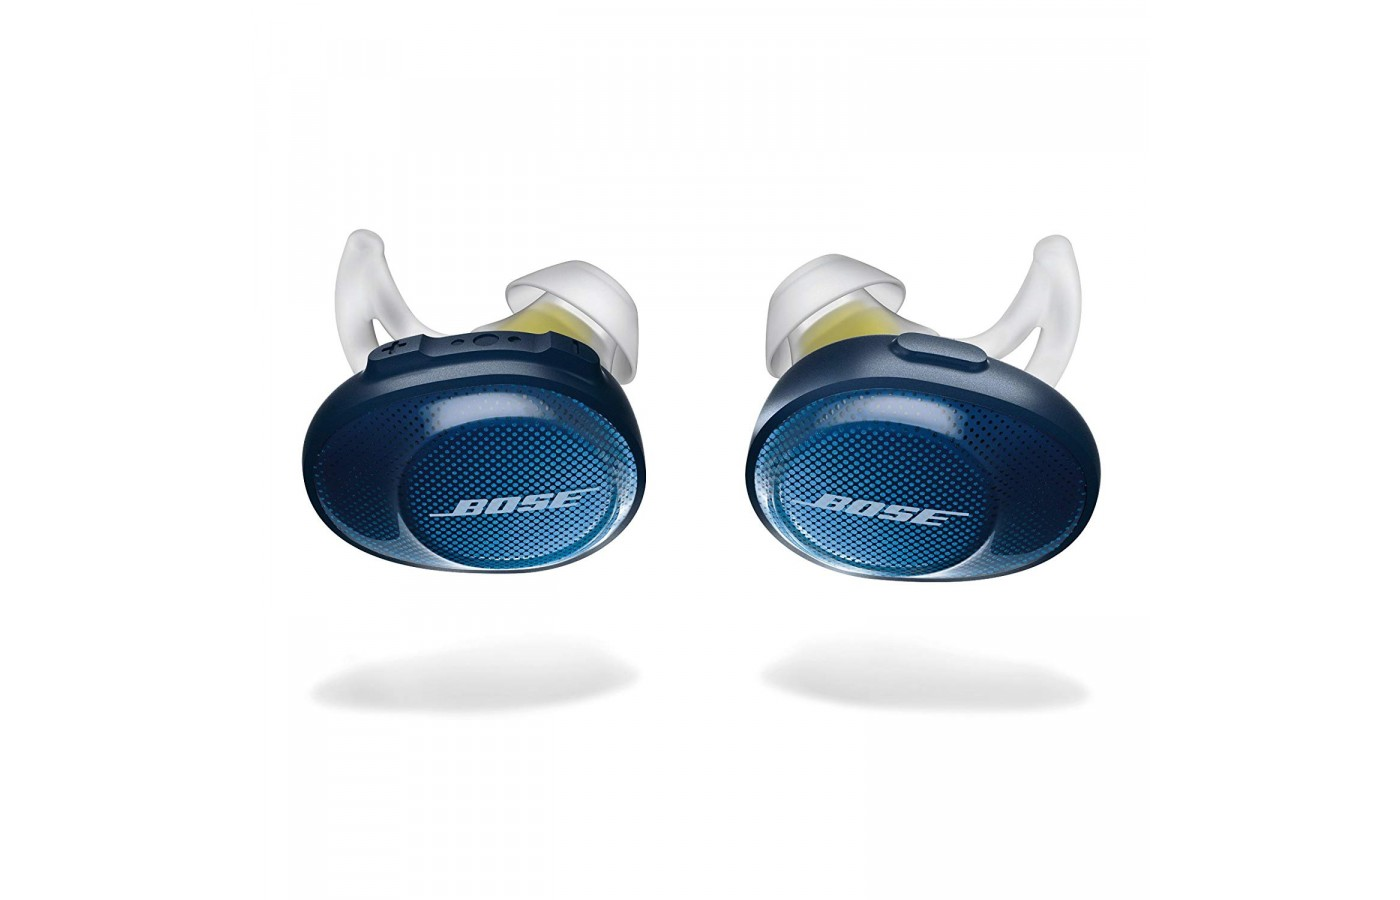 Bose Soundsport is a truely wireless set of earbuds.